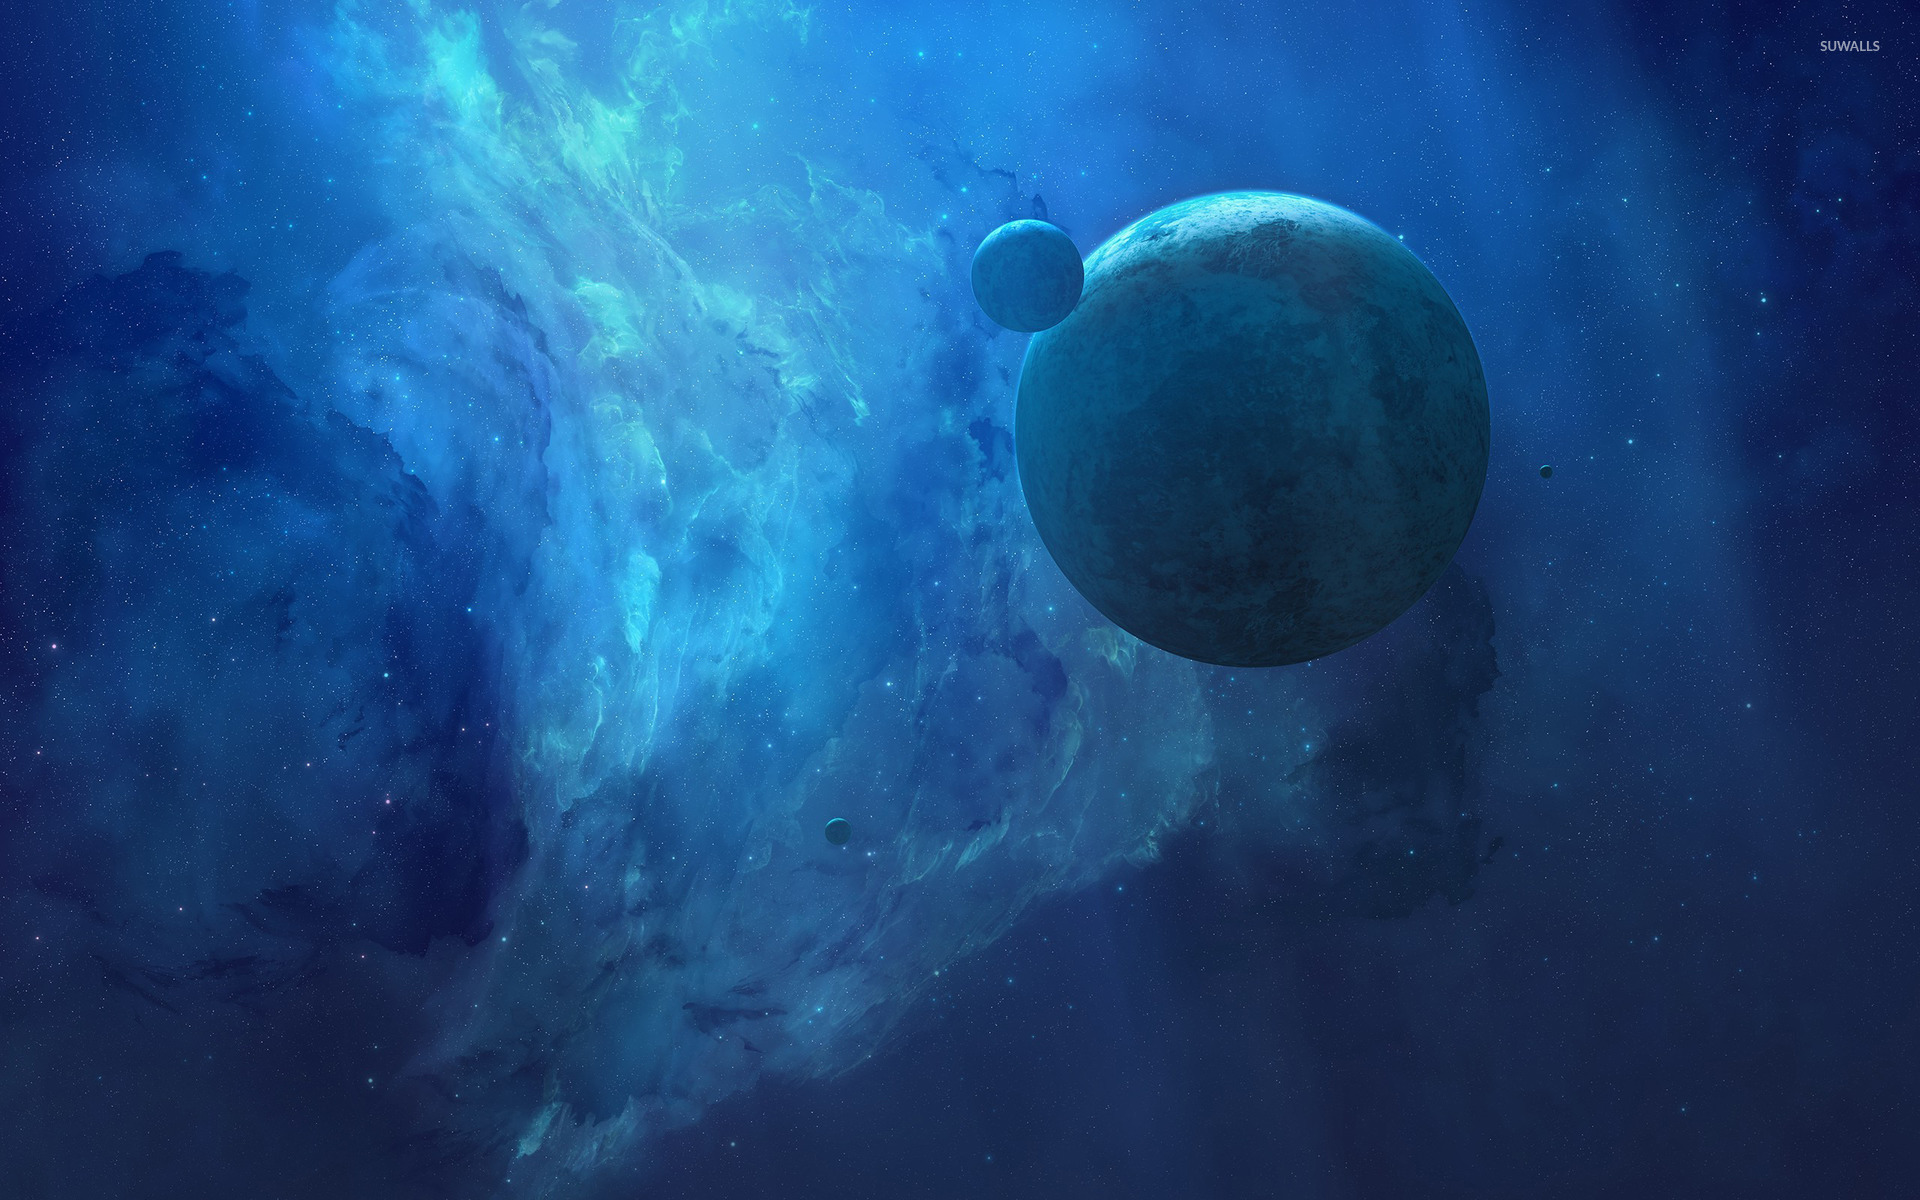 Blue universe wallpaper - Space wallpapers - #22592